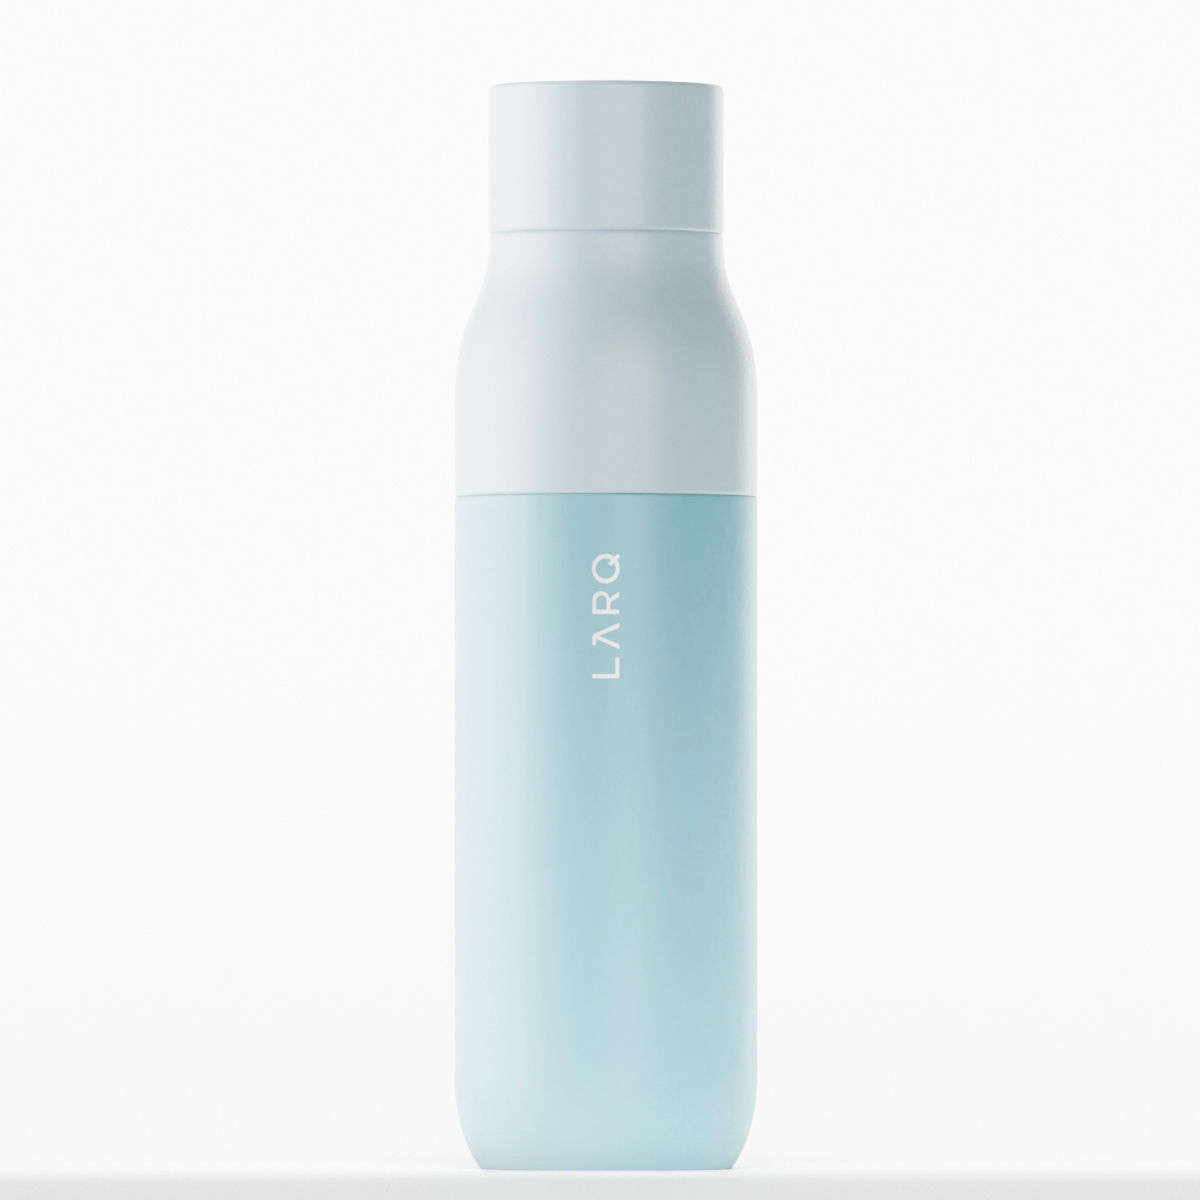 LARQ Self-Cleaning Reusable Water Bottle 500ml closed